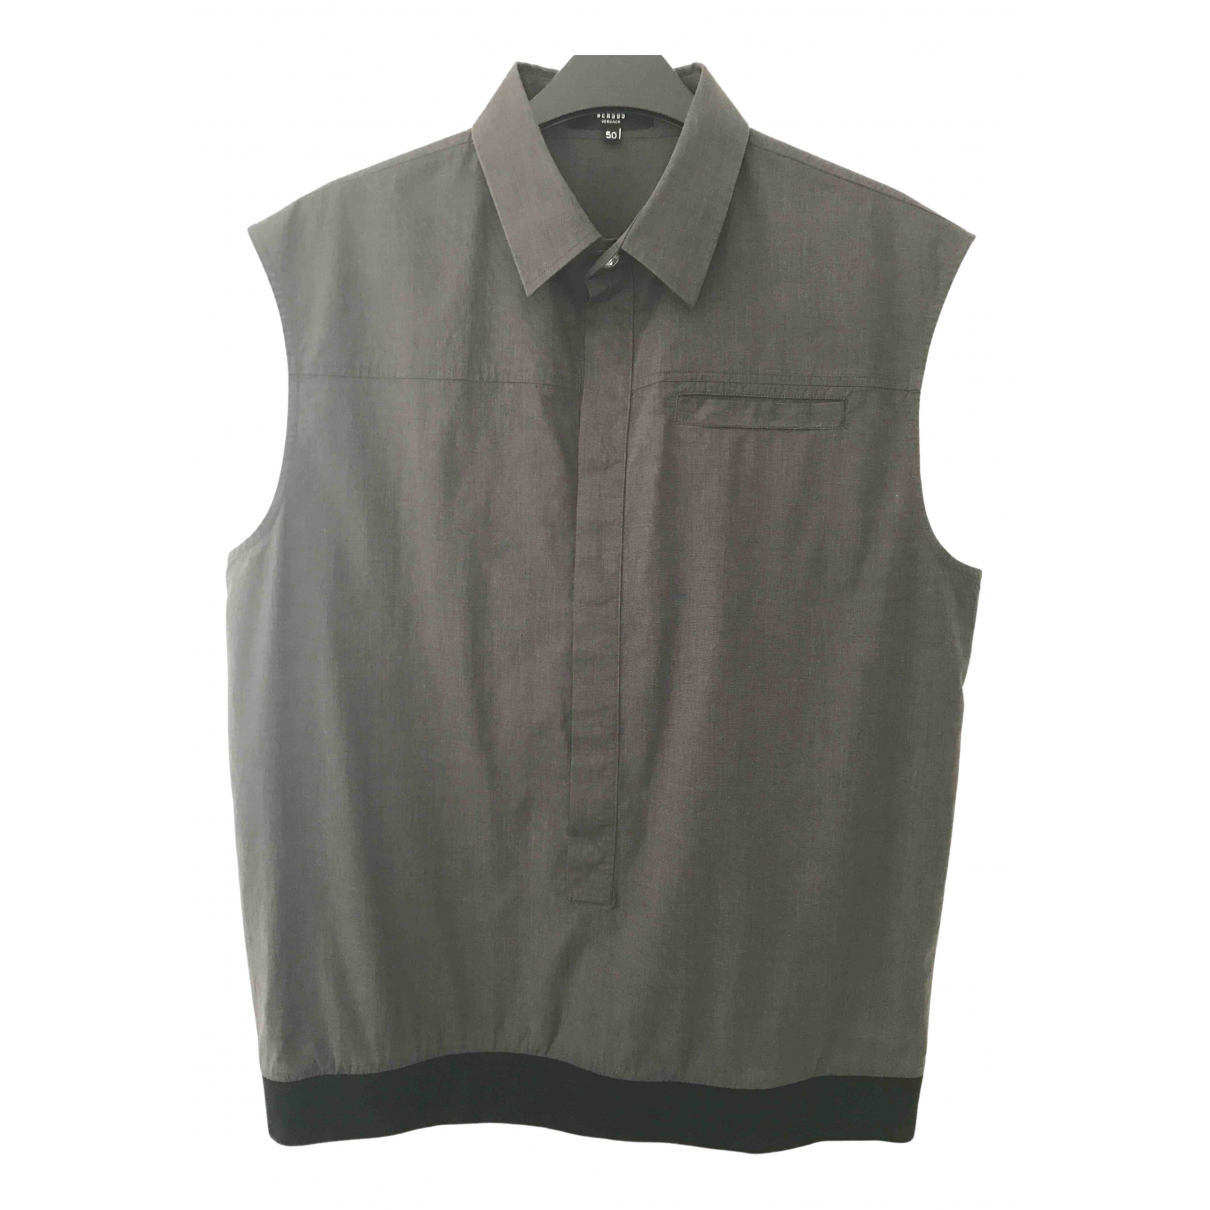 Versus \N Grey Cotton Shirts for Men S International